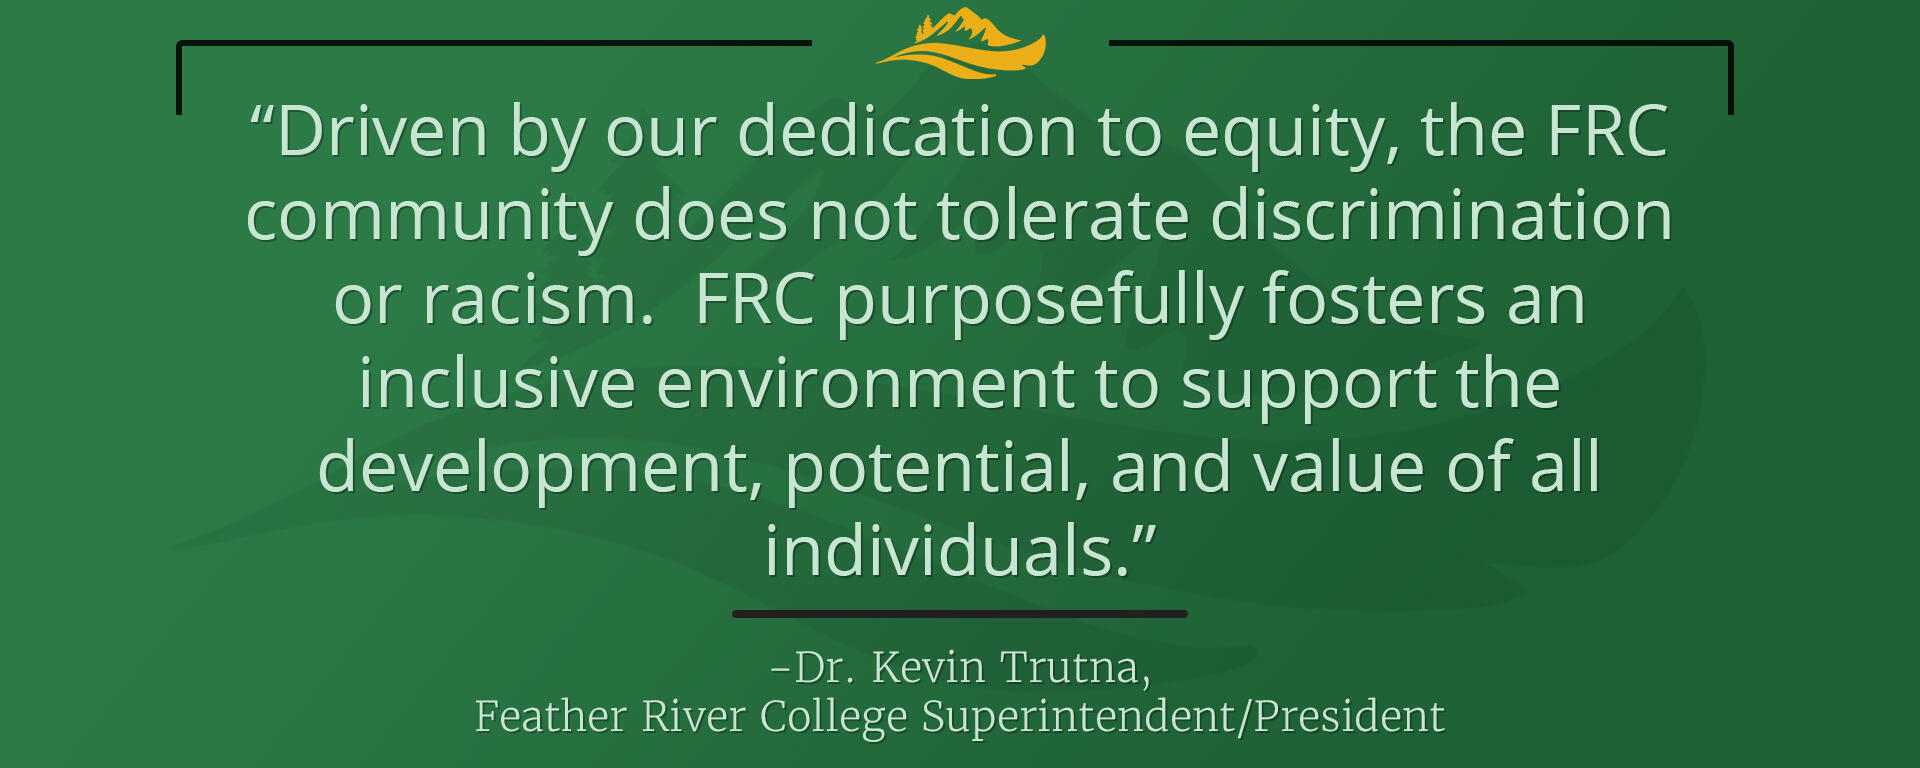 Driven by our dedication to equity, the FRC community does not tolerate discrimination or racism.  FRC purposefully fosters an inclusive environment to support the development, potential, and value of all individuals.  Dr. Kevin Trutna, Feather River College Superintendent/President